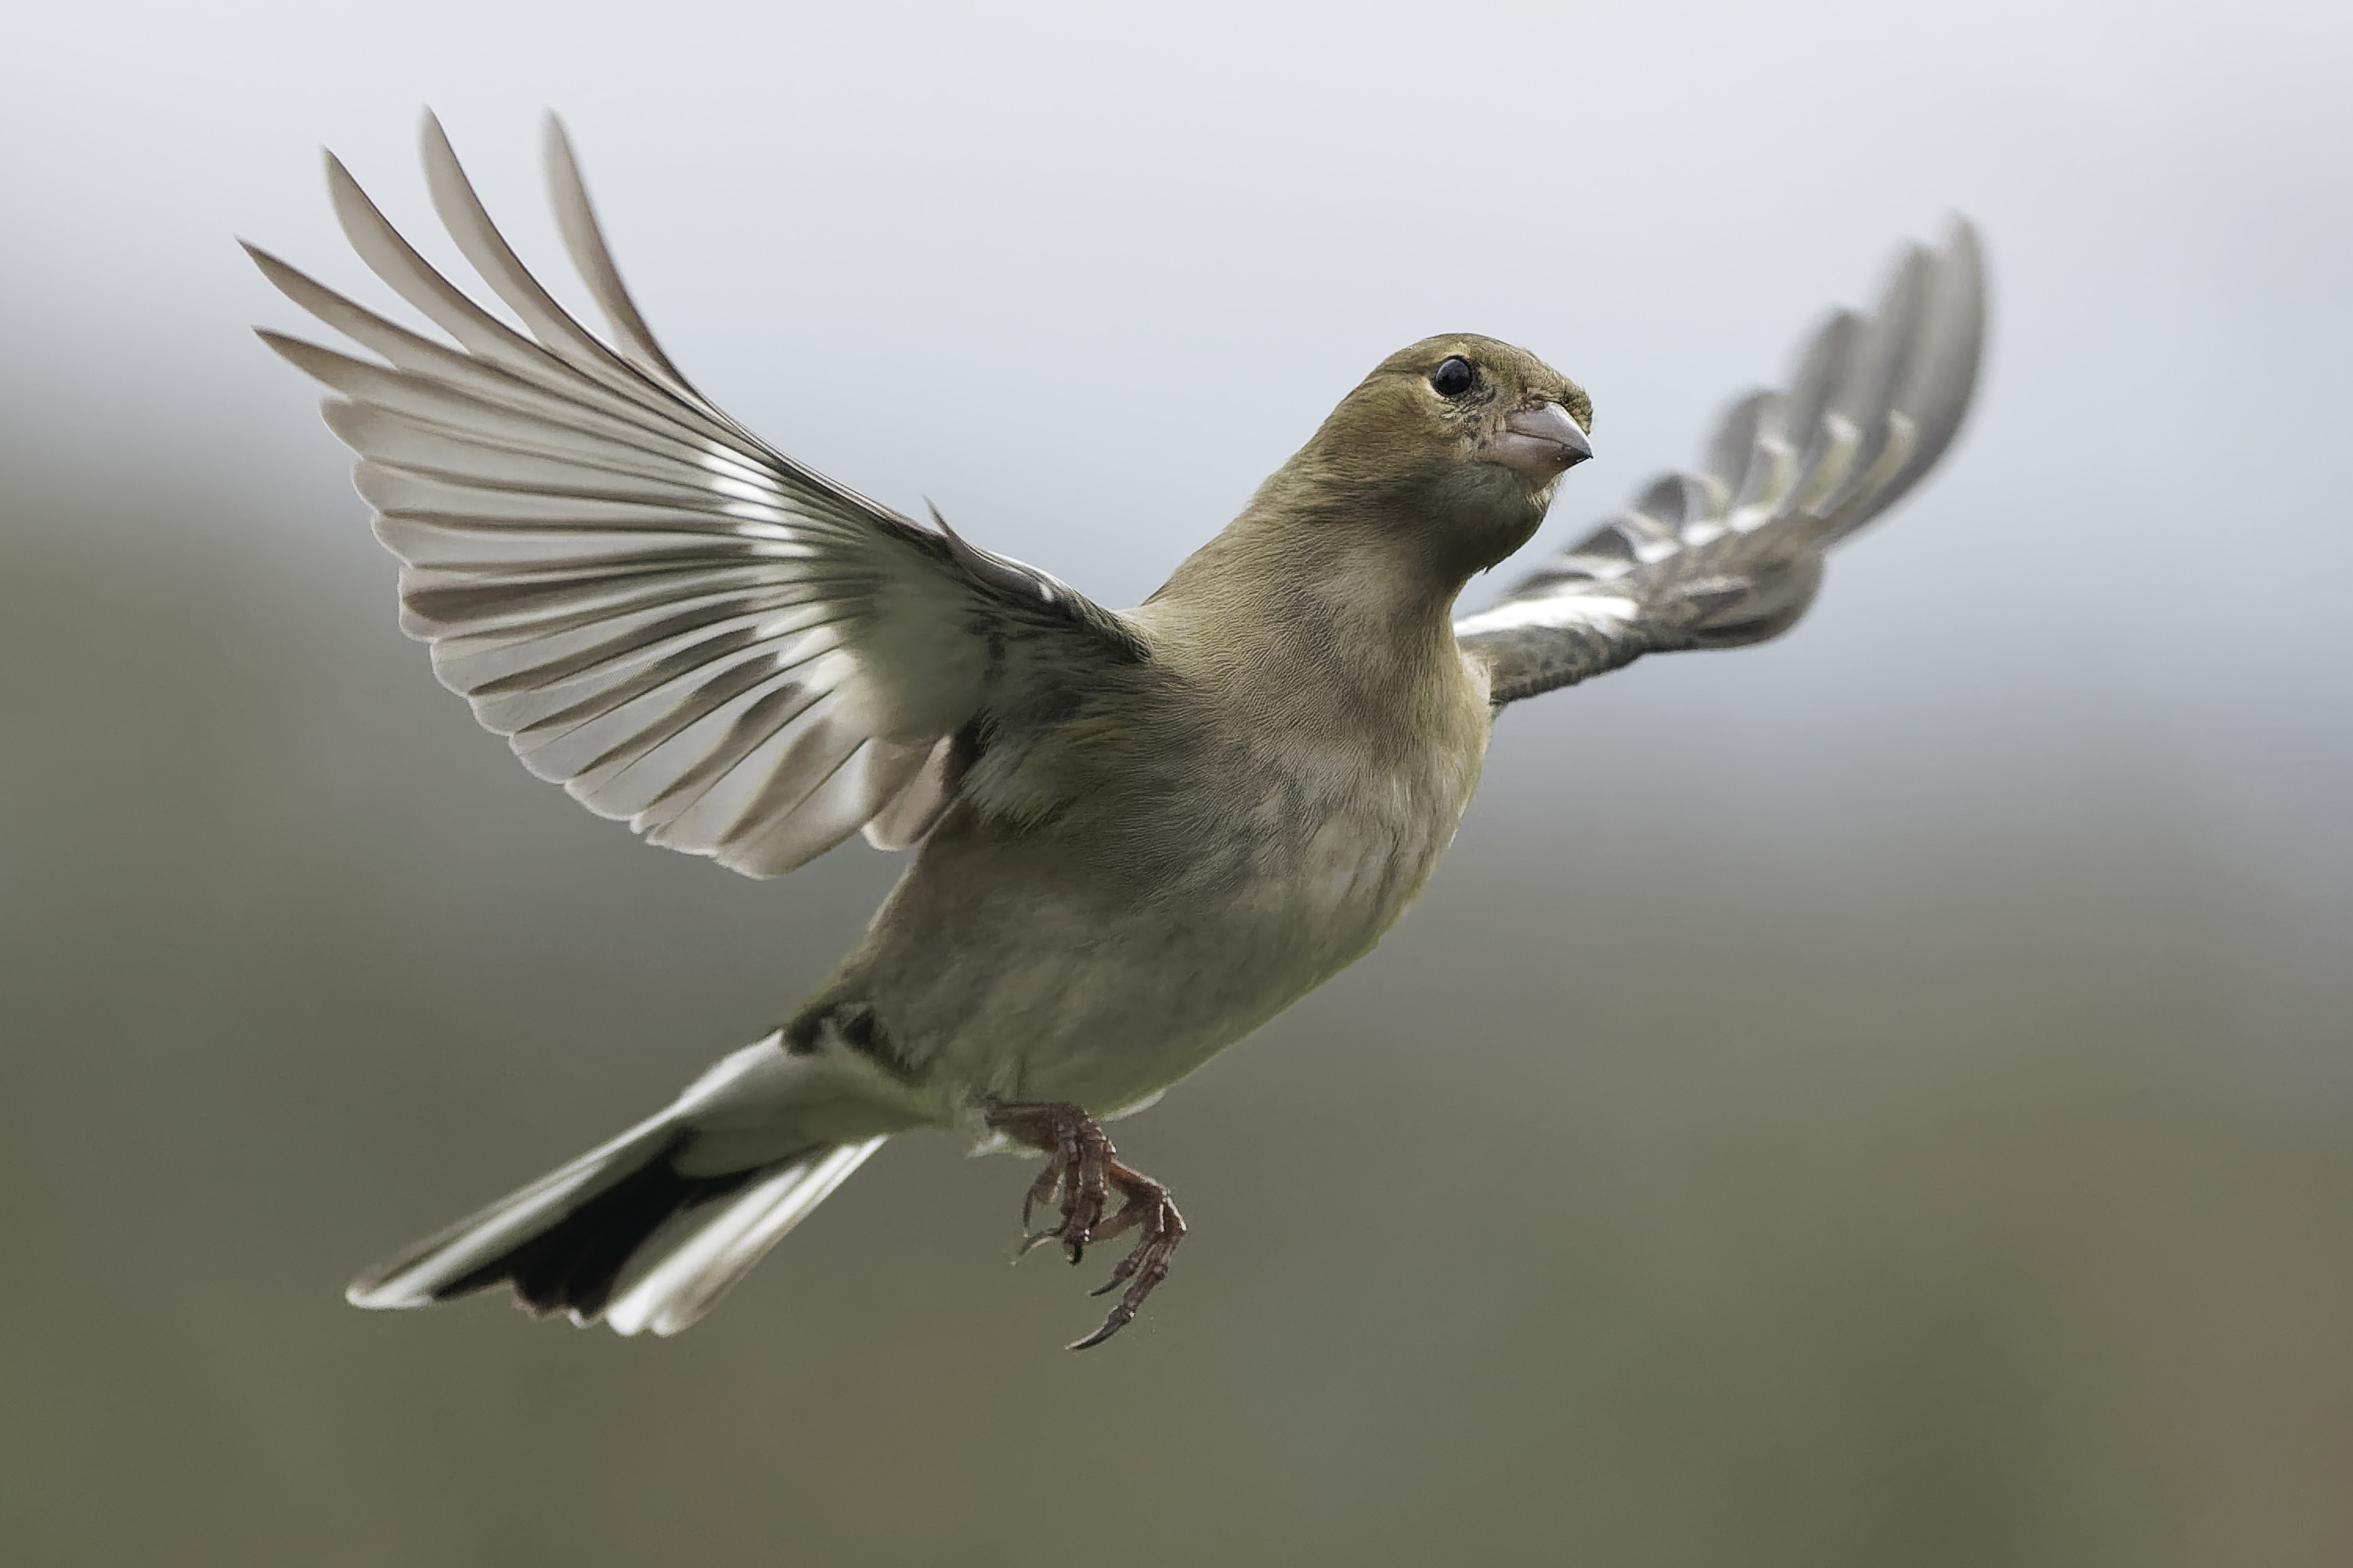 flying gray and white bird